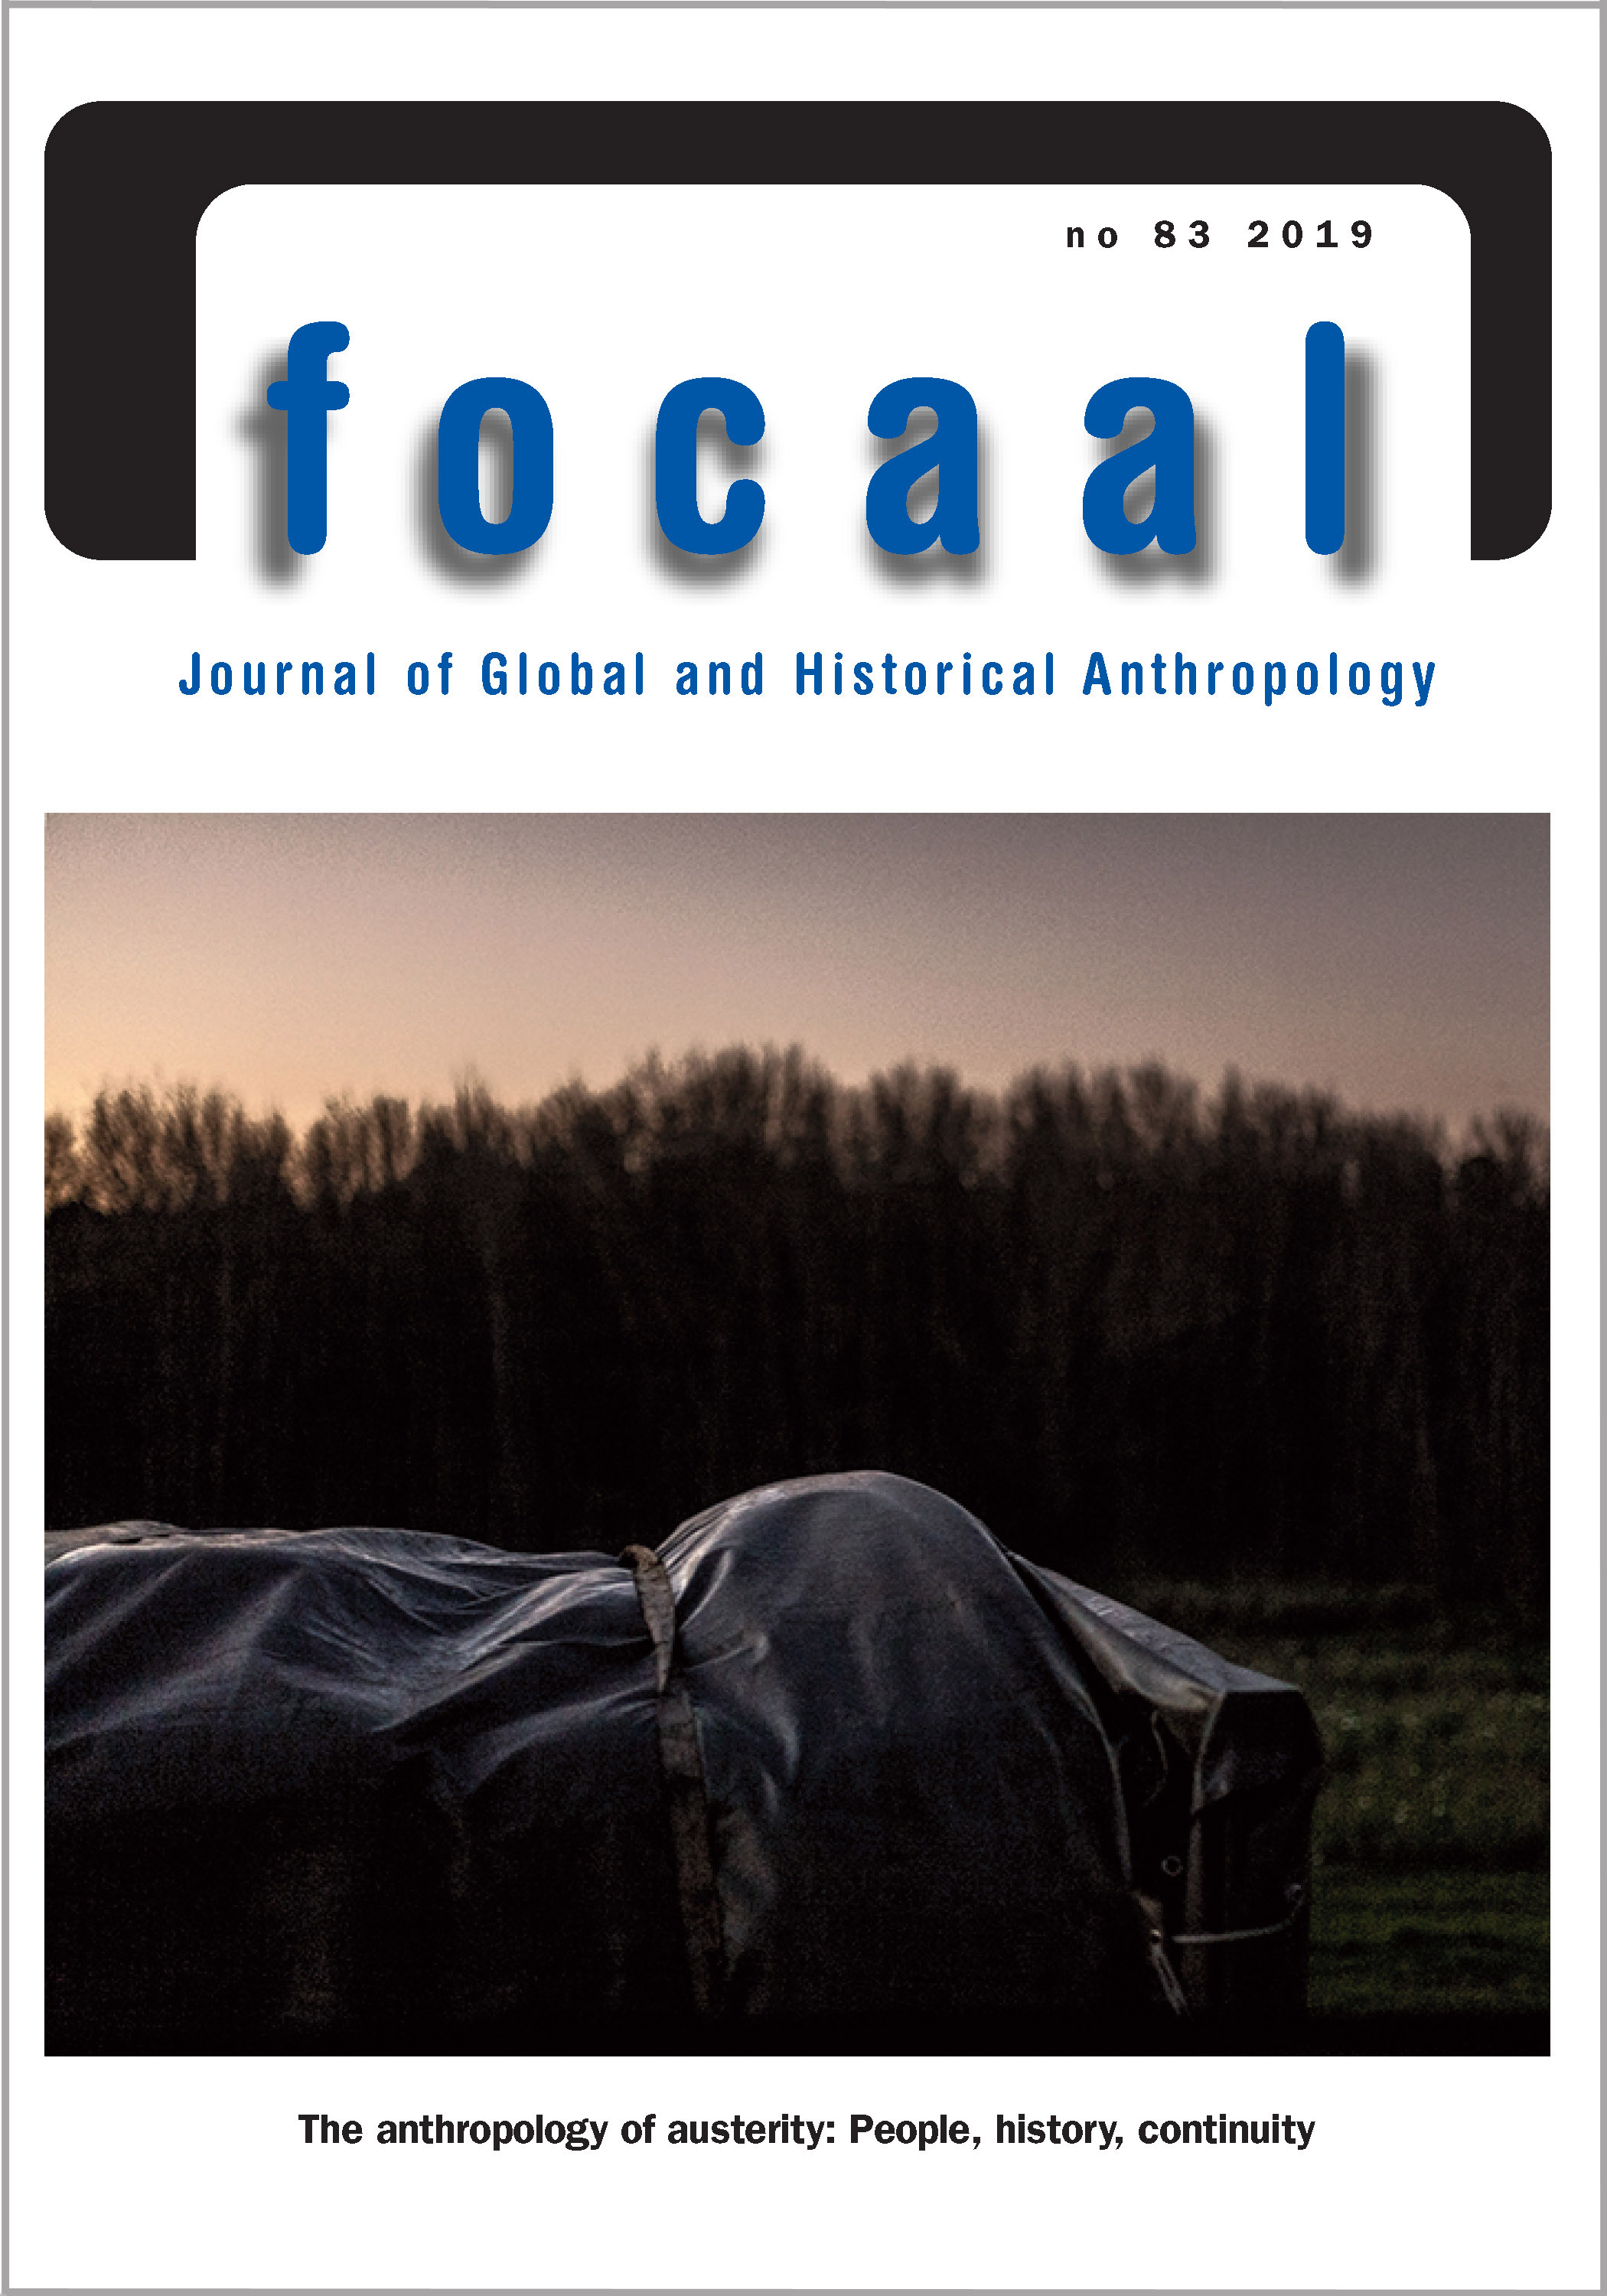 Focaal Volume 2019, Issue 83: The anthropology of austerity @FocaalBlog